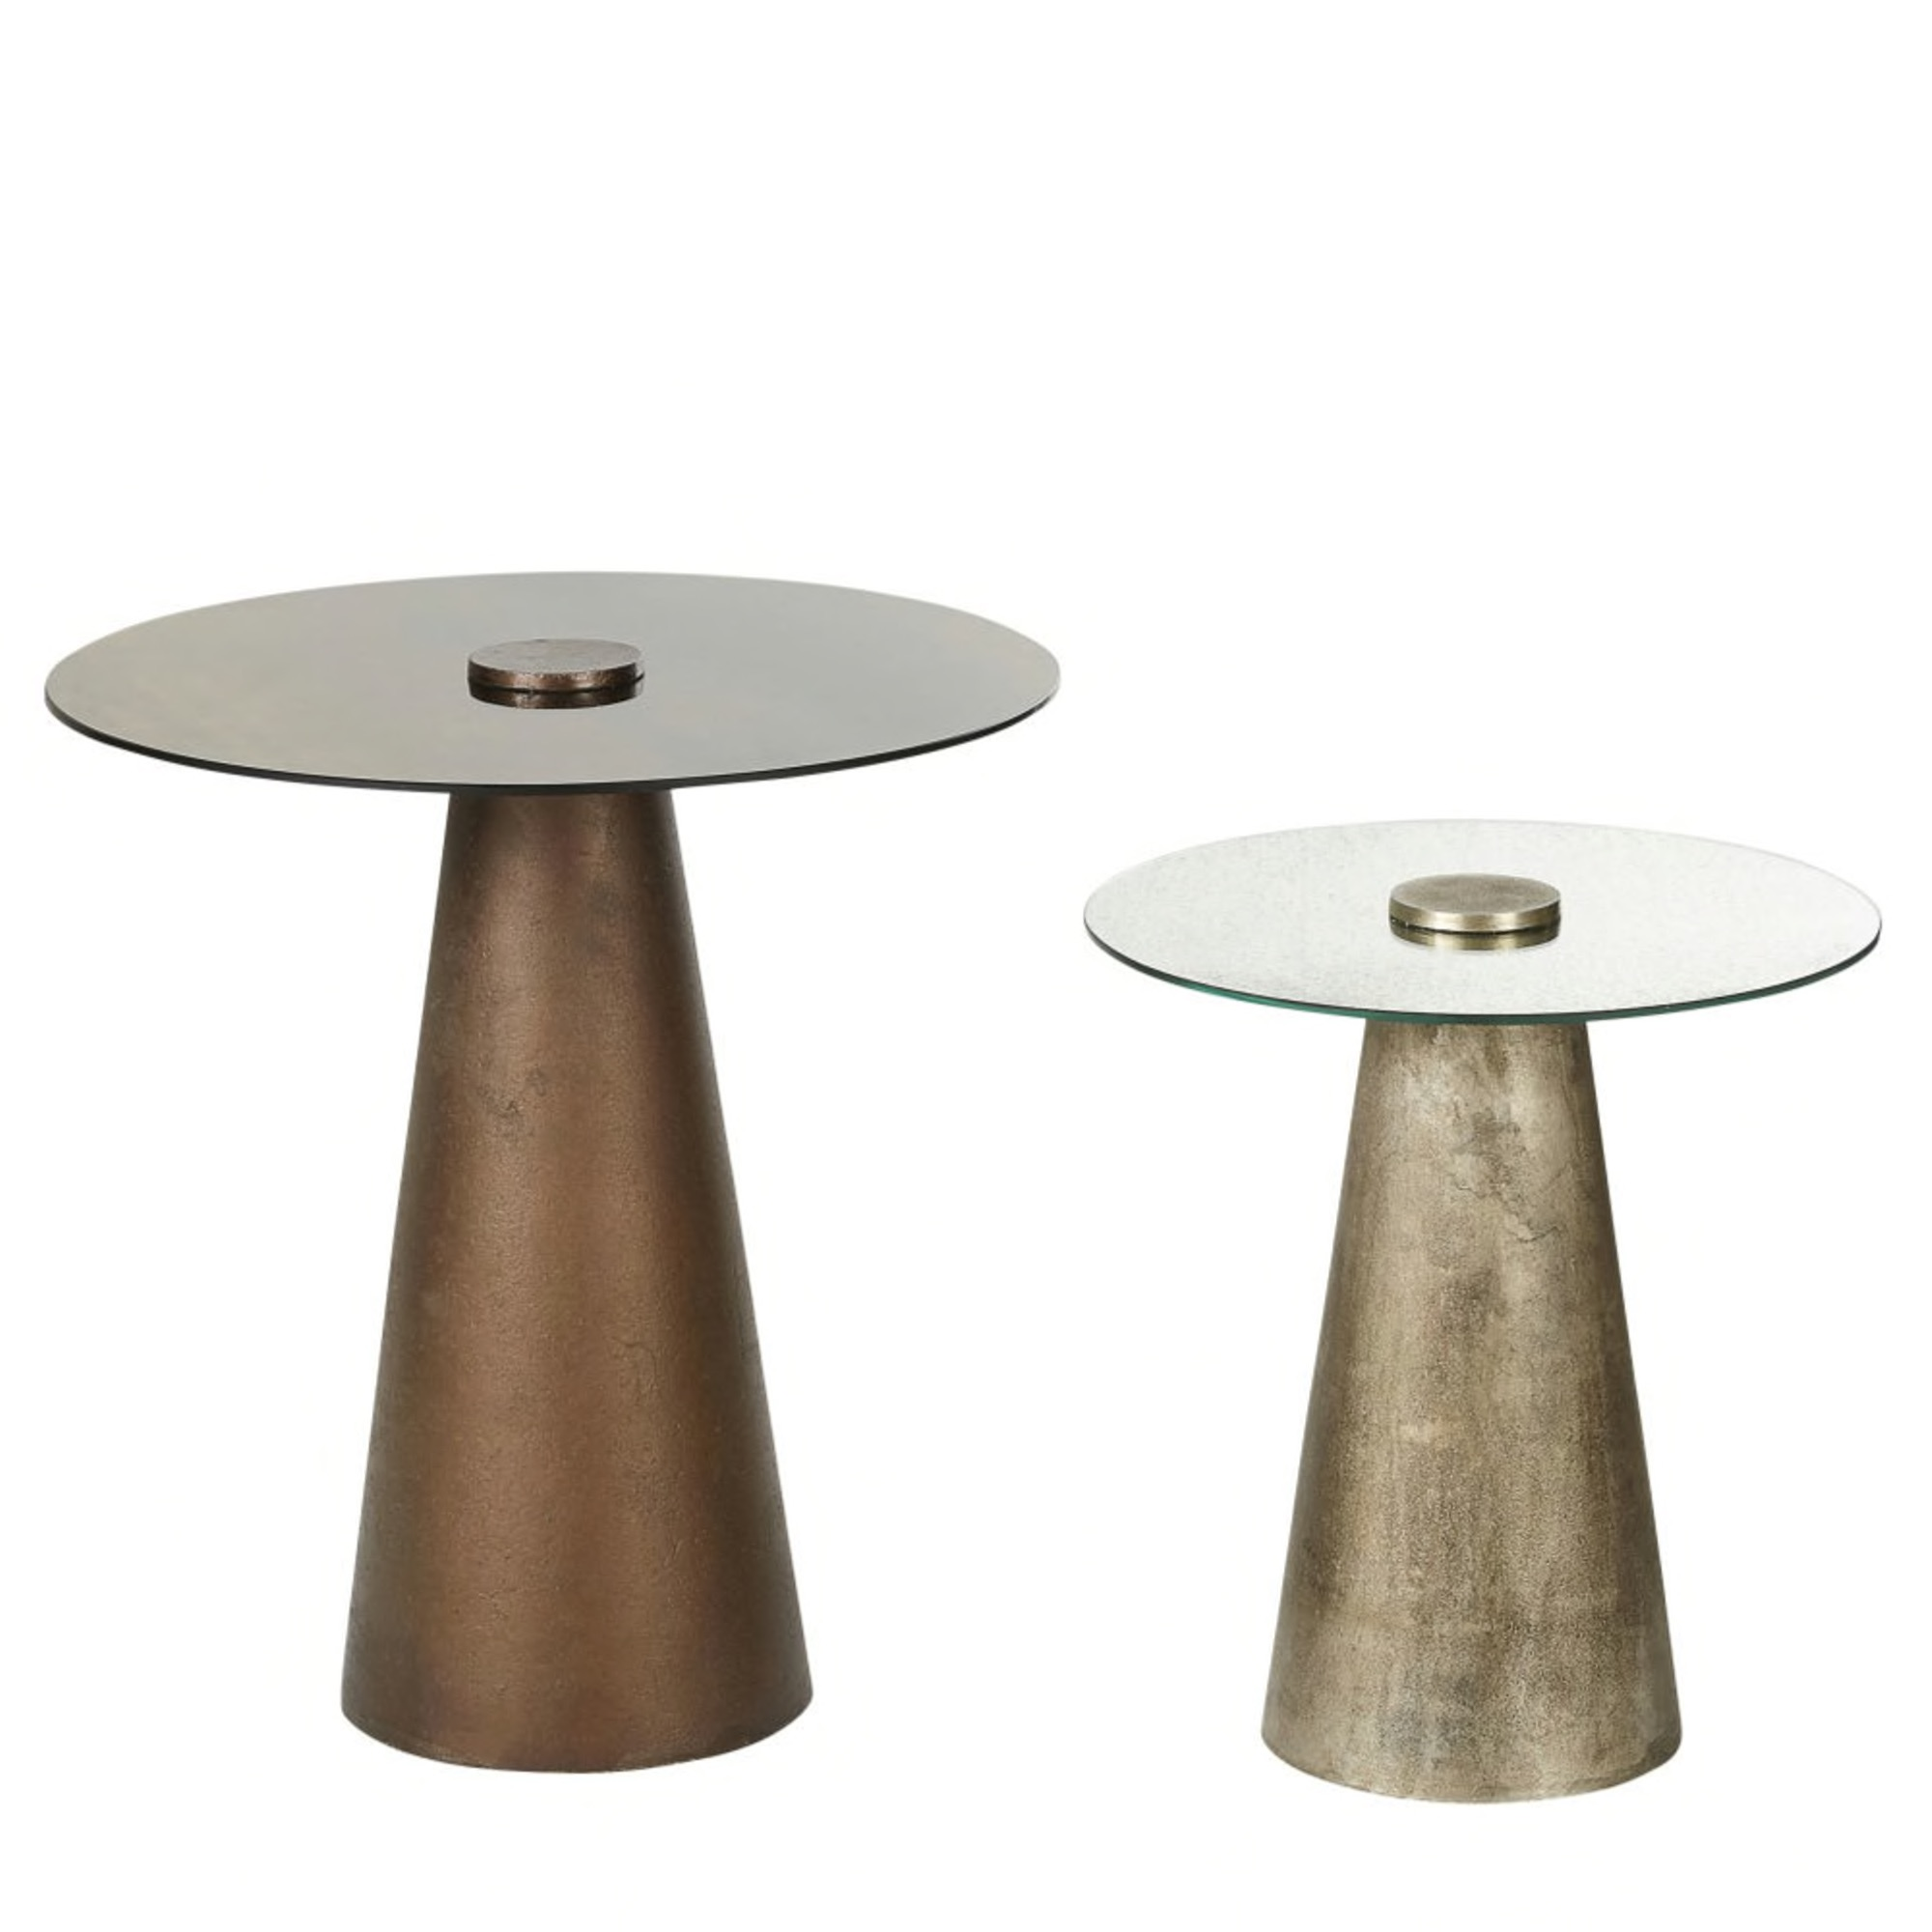 Silver and Bronze Metal and Glass Side Tables (x2) £165.00